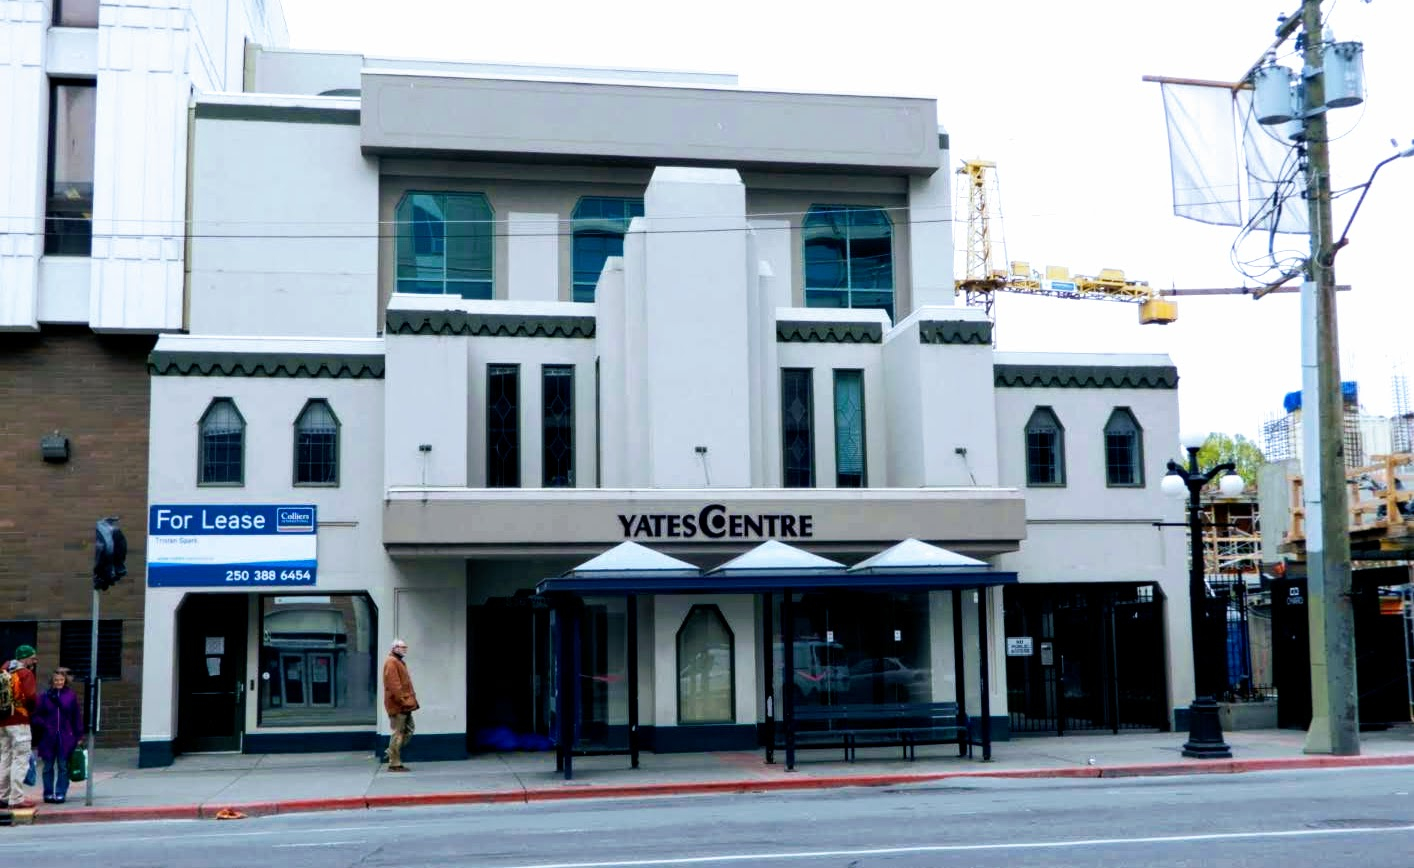 The former Famous Players Coronet Theatre - Home to the newly gated mid-block walkway.